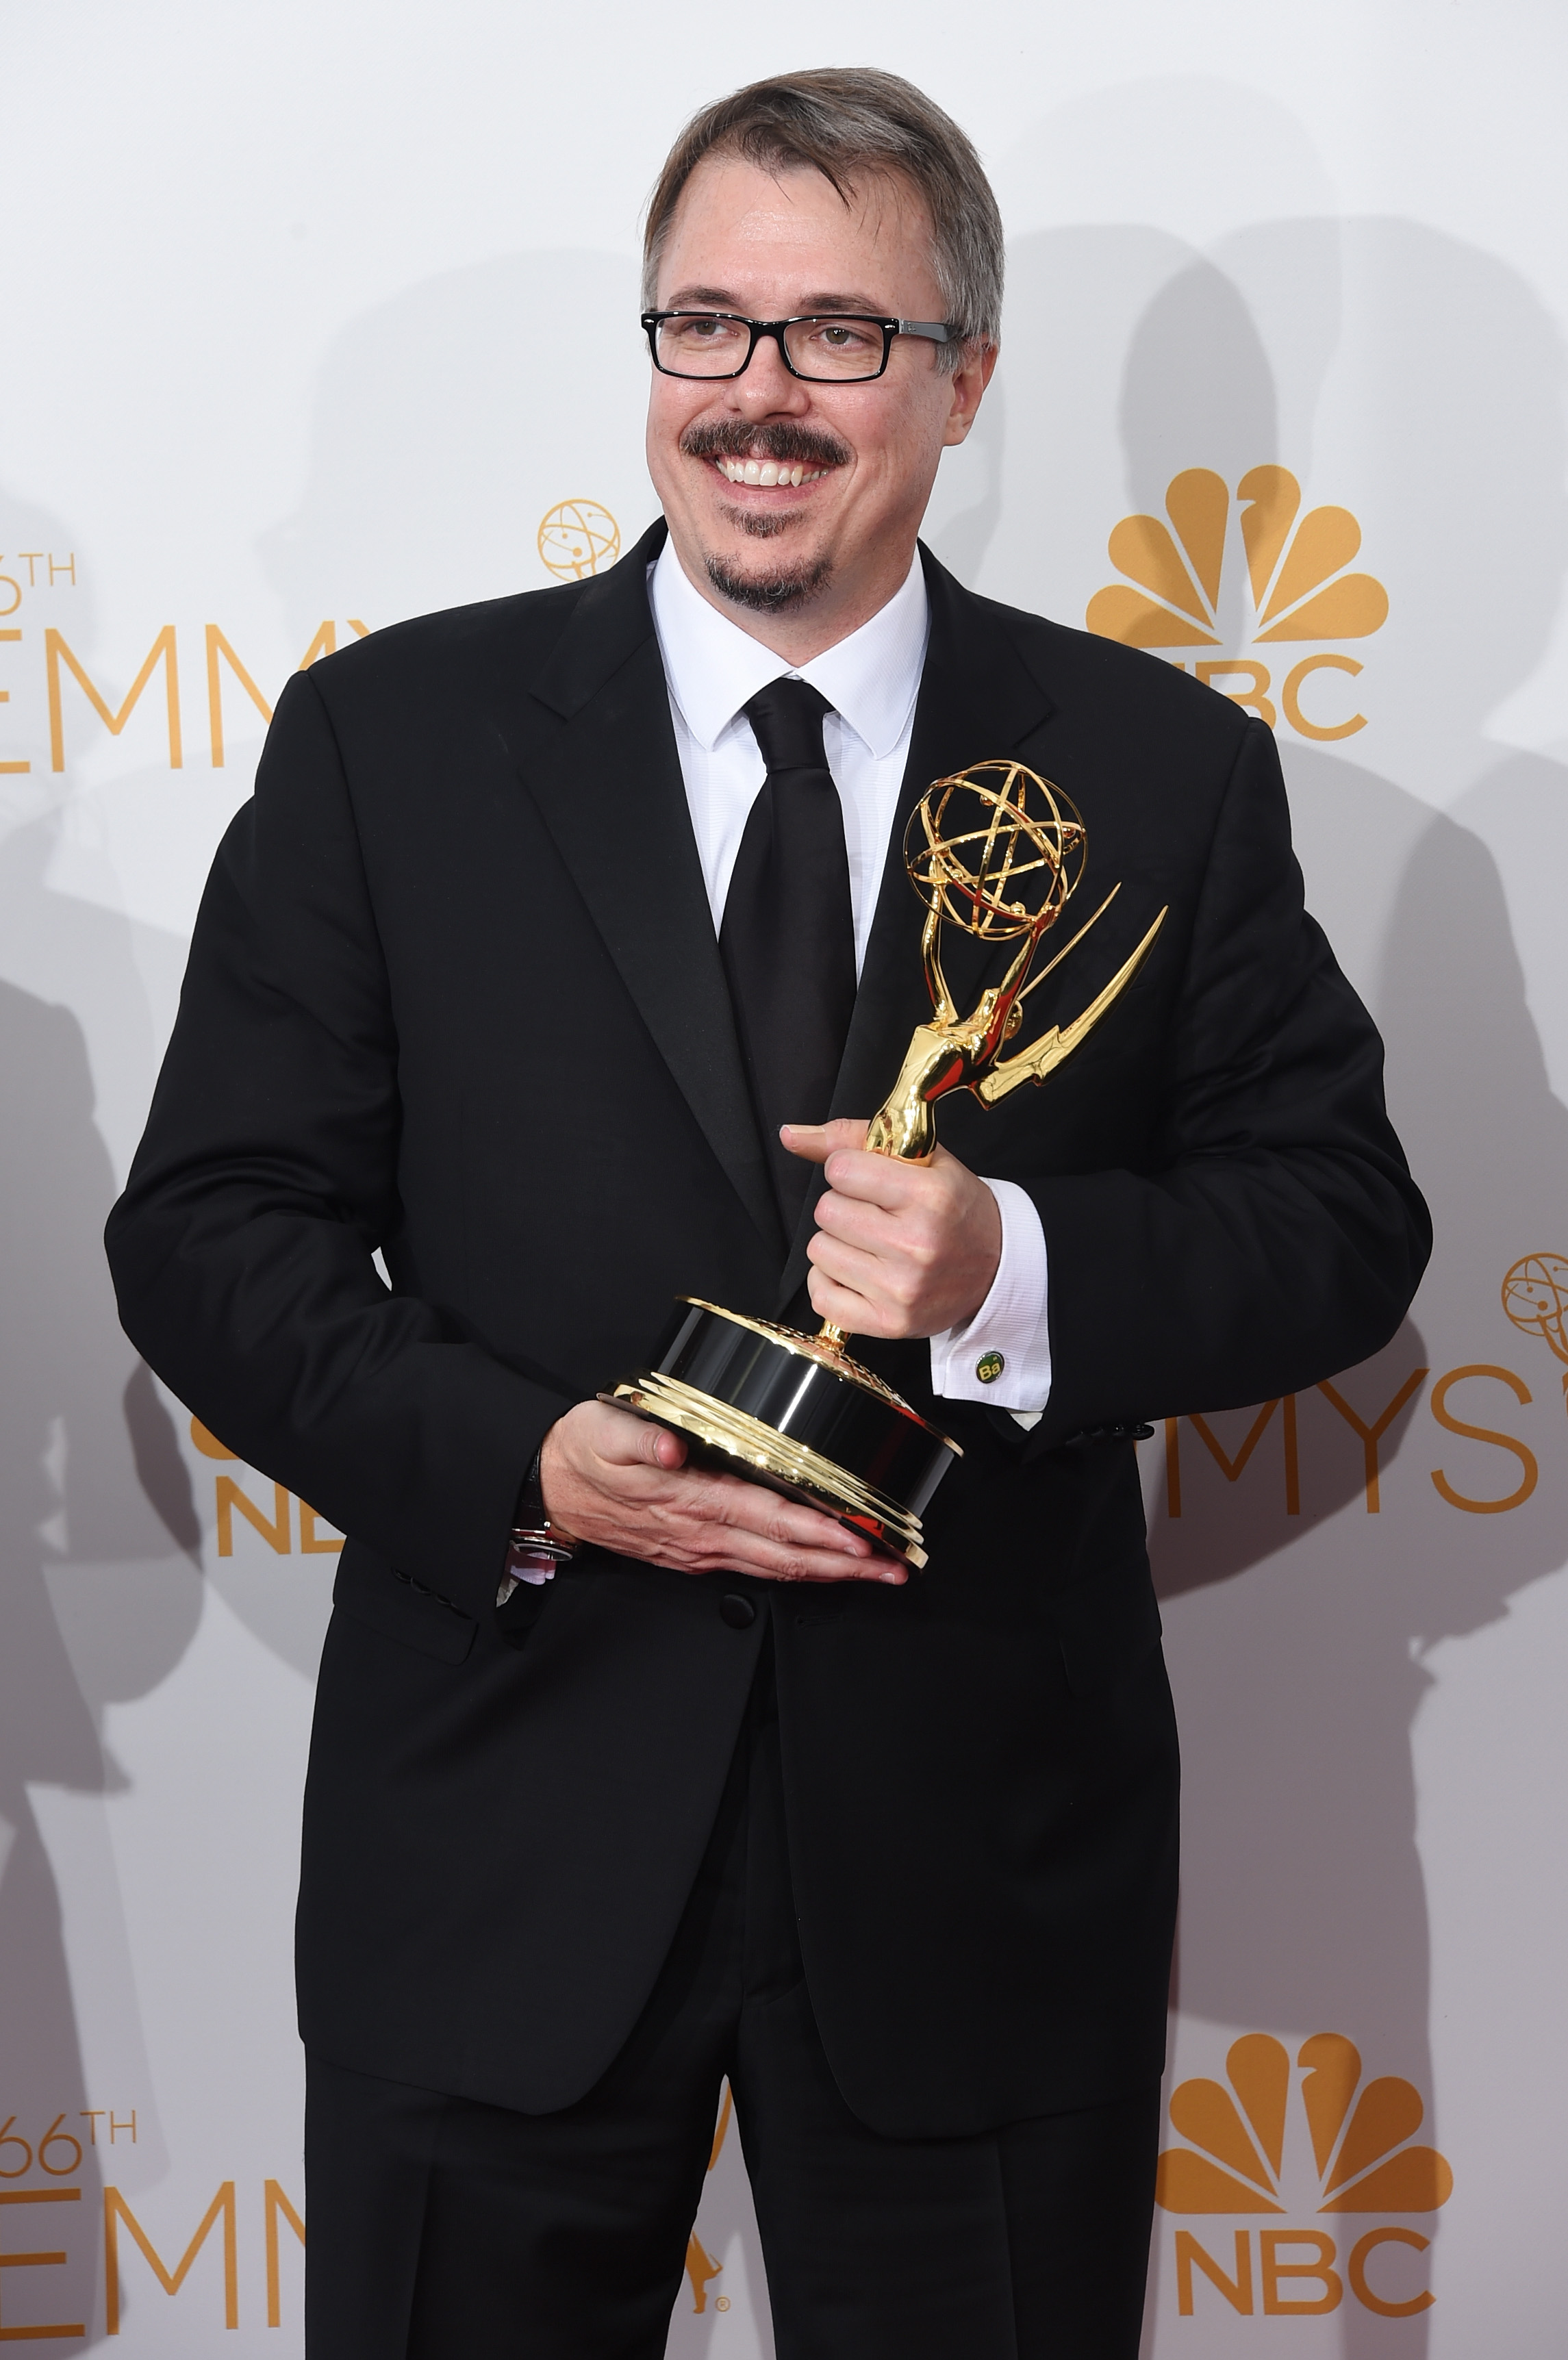 LOS ANGELES, CA - AUGUST 25:  Show Creator Vince Gilligan, winner of the Outstanding Drama Series Award for Breaking Bad poses in the press room during the 66th Annual Primetime Emmy Awards held at Nokia Theatre L.A. Live on August 25, 2014 in Los Angeles, California.